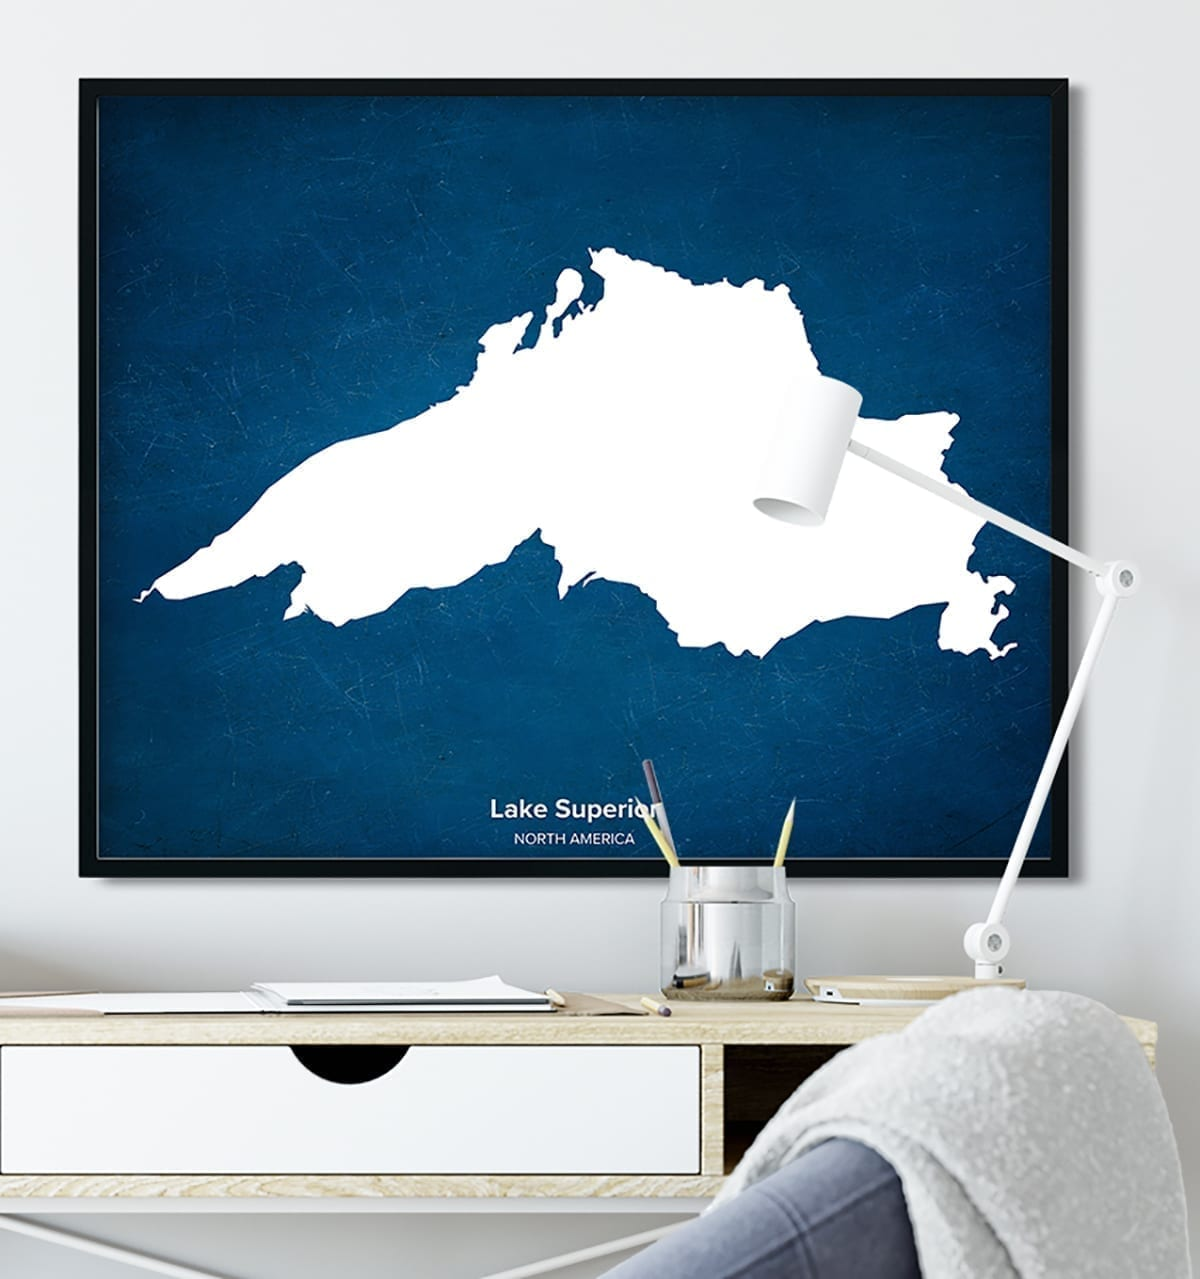 Lake Superior Personalized Wall Art